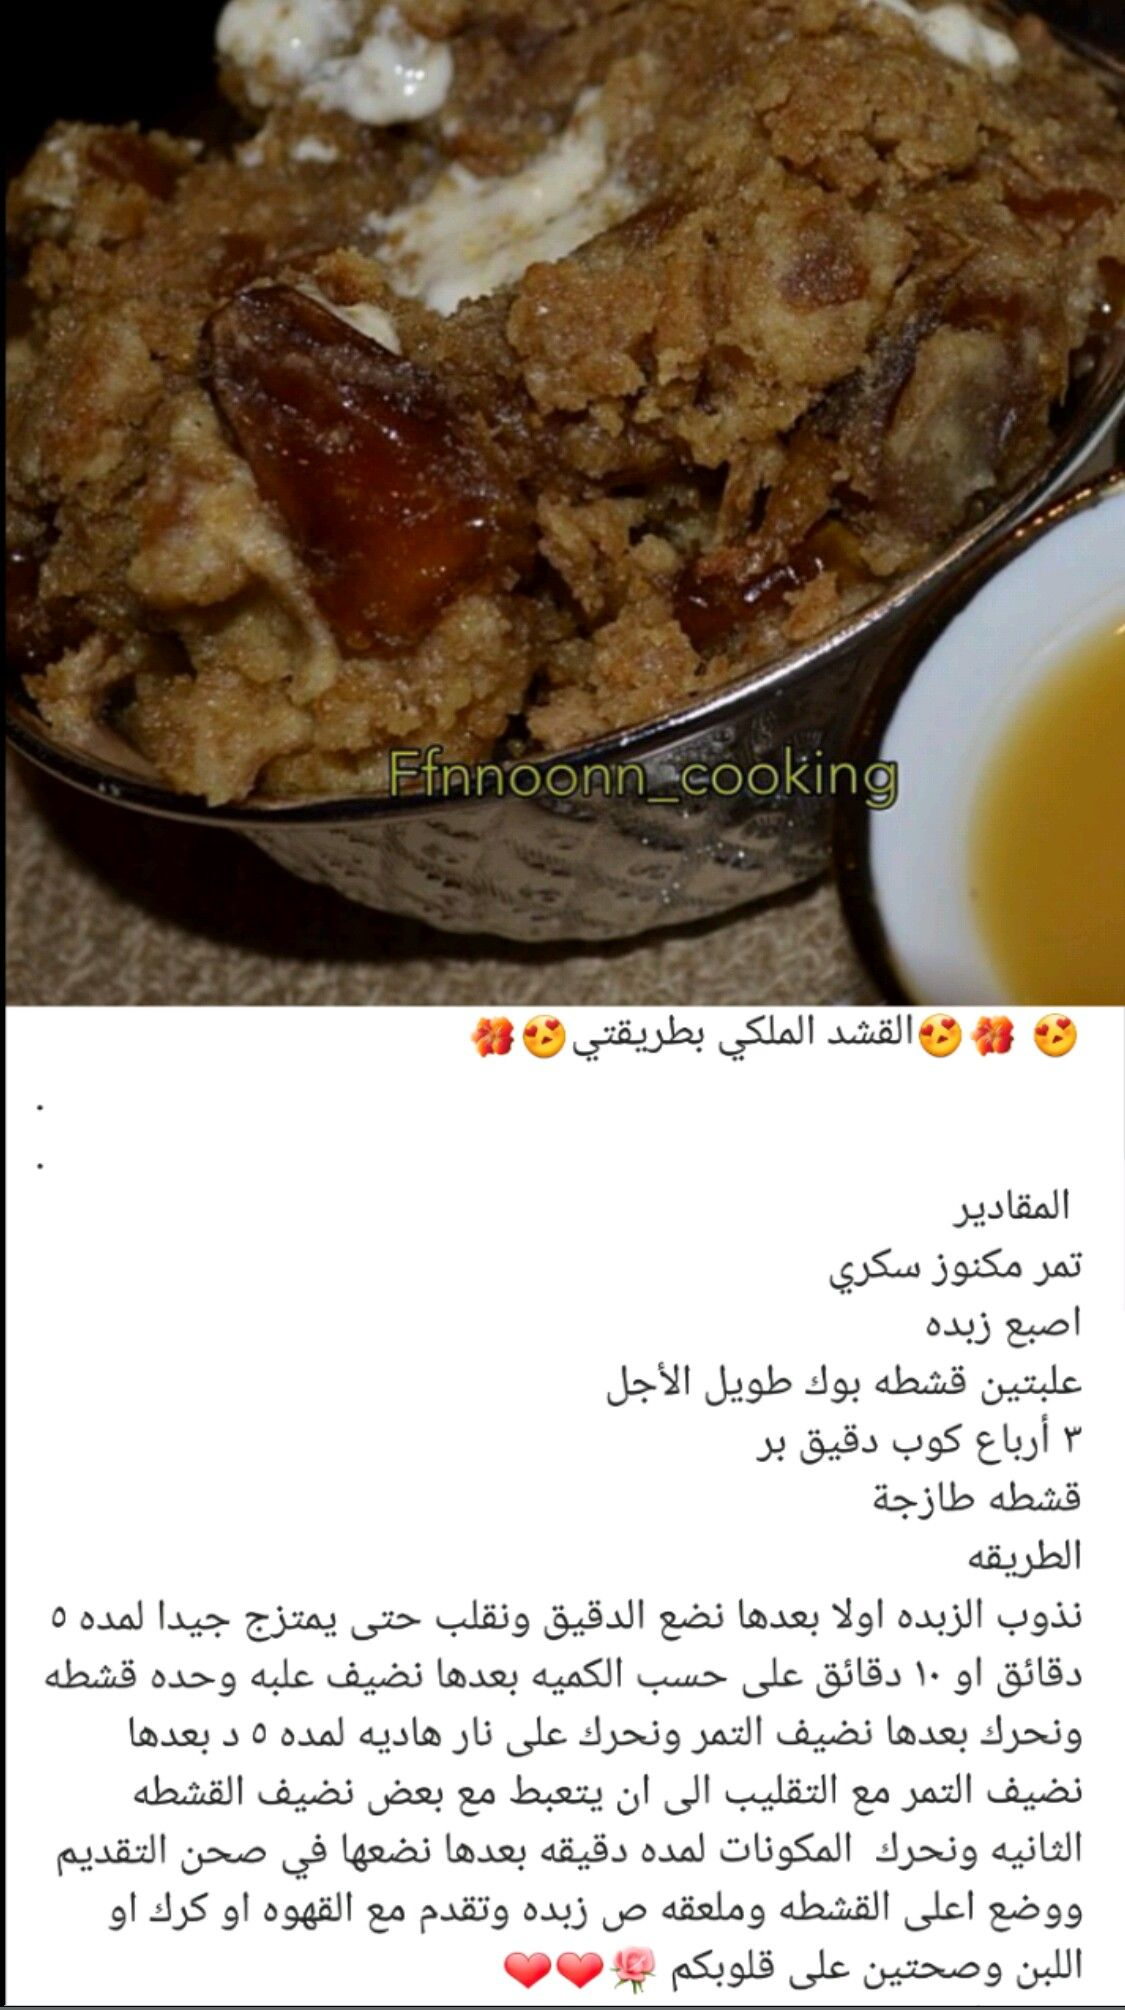 Pin By Asma Alotaibi On طبخ Cooking Food Beef